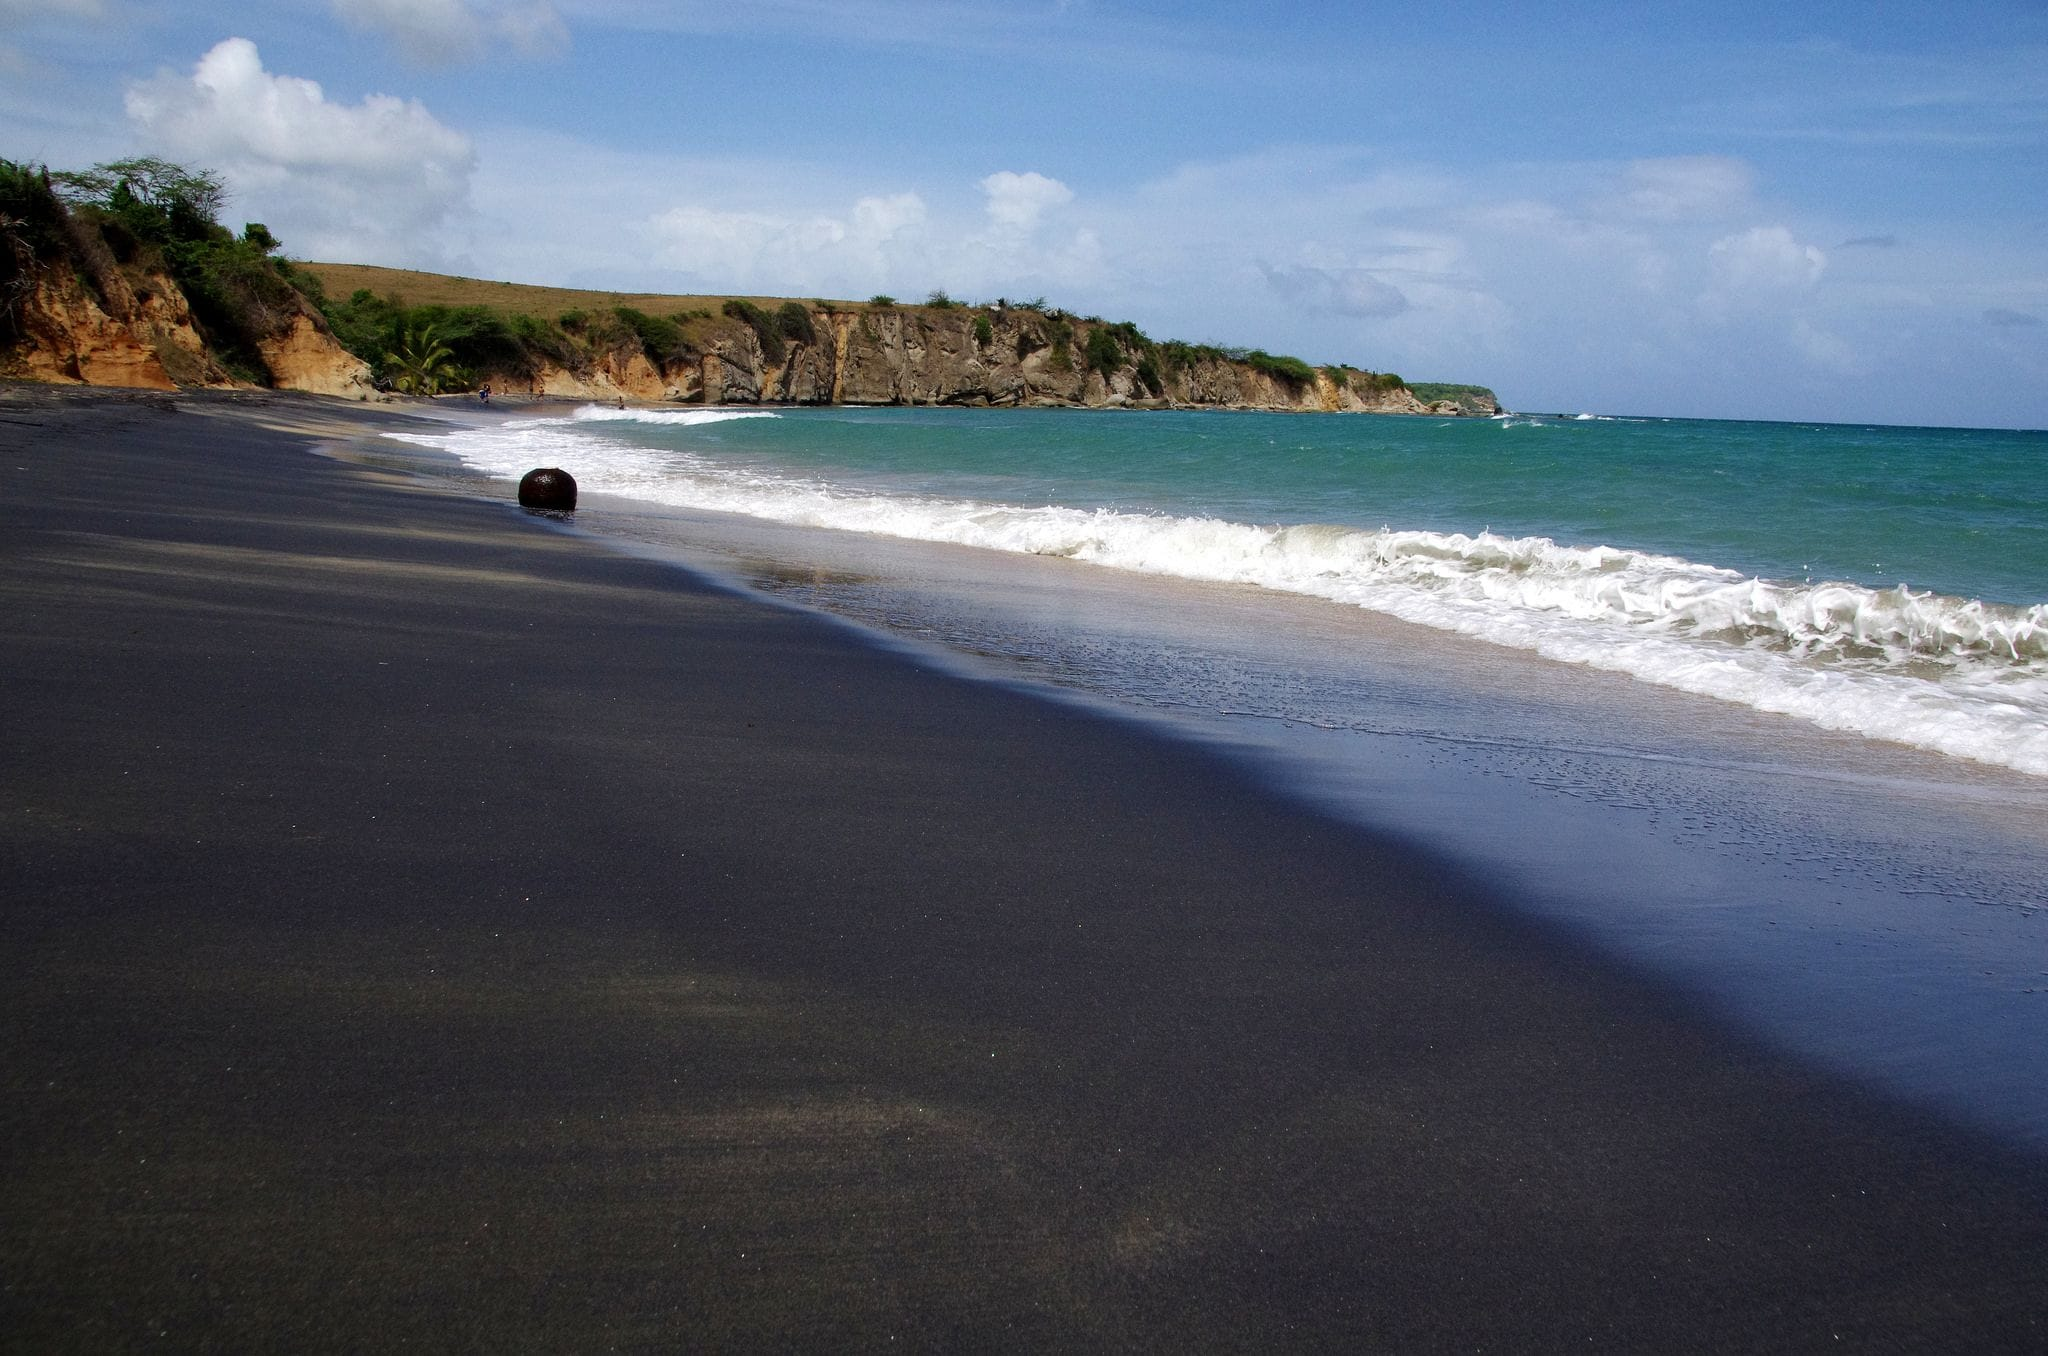 Playa Negra, Vieques: An Out of Place Black Sand Beach